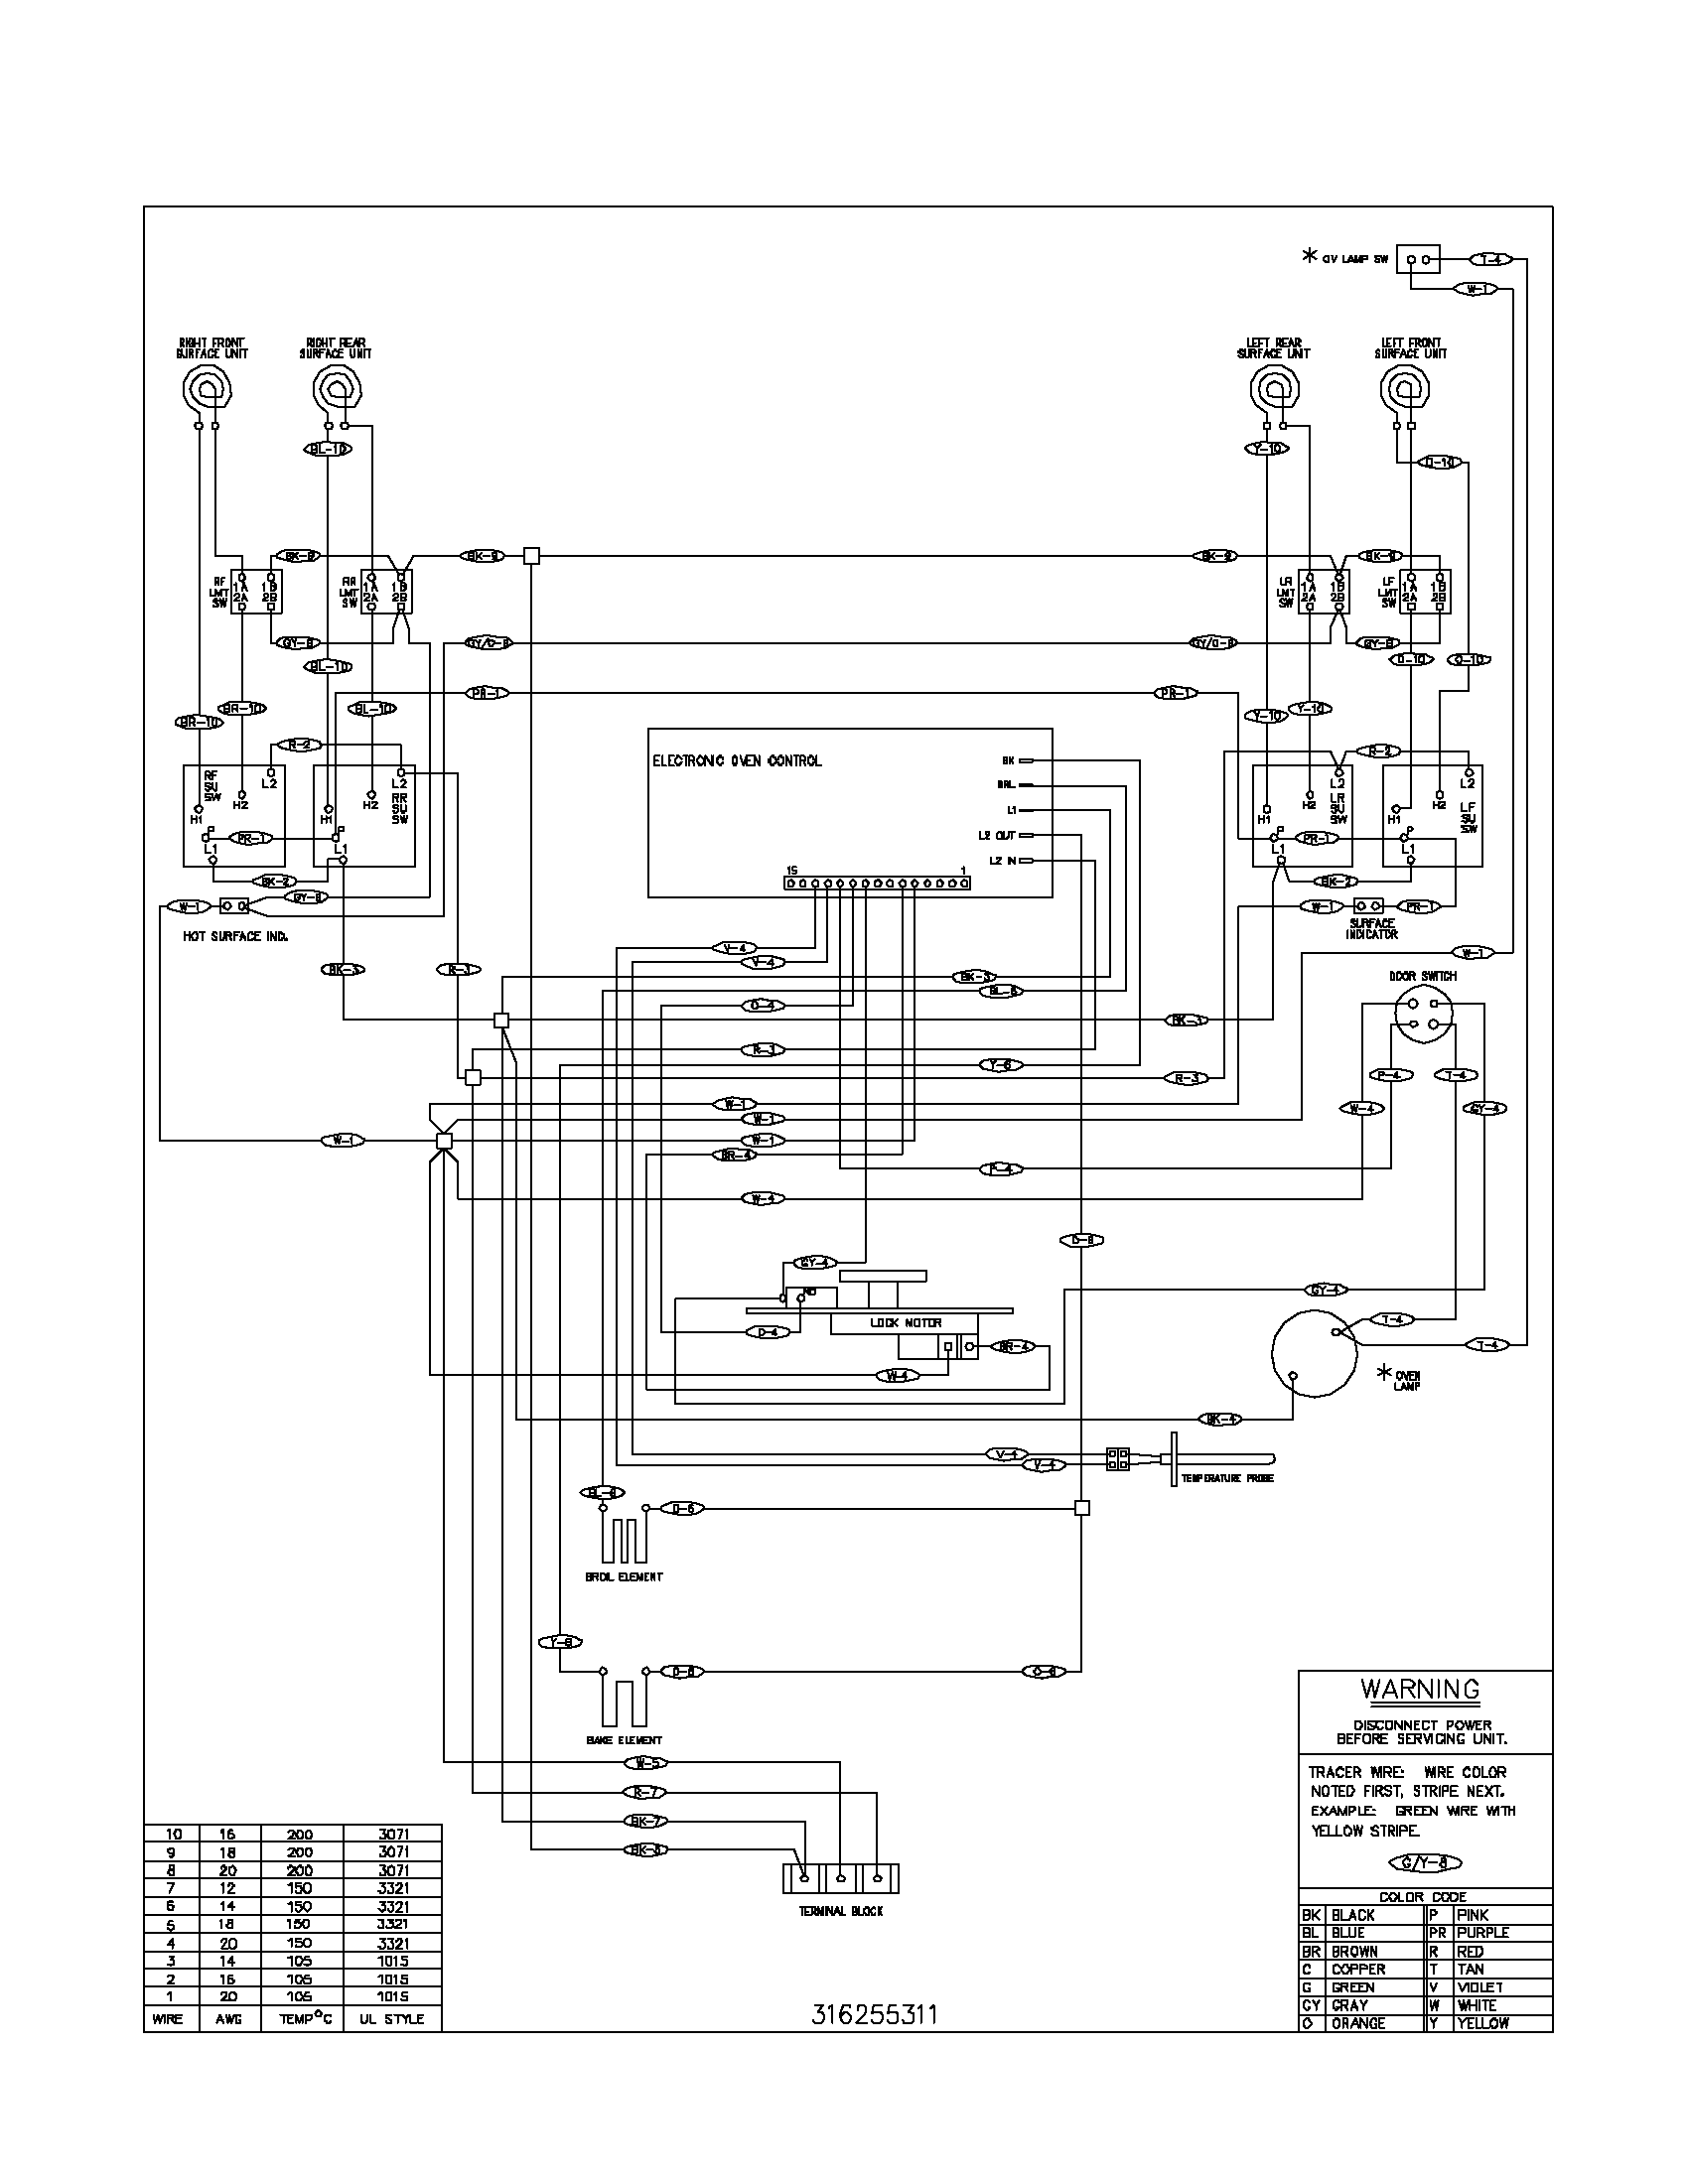 Frigidaire Wiring Diagram: Frigidaire FEF366CCB Electric Range Timer - Stove Clocks and ,Design